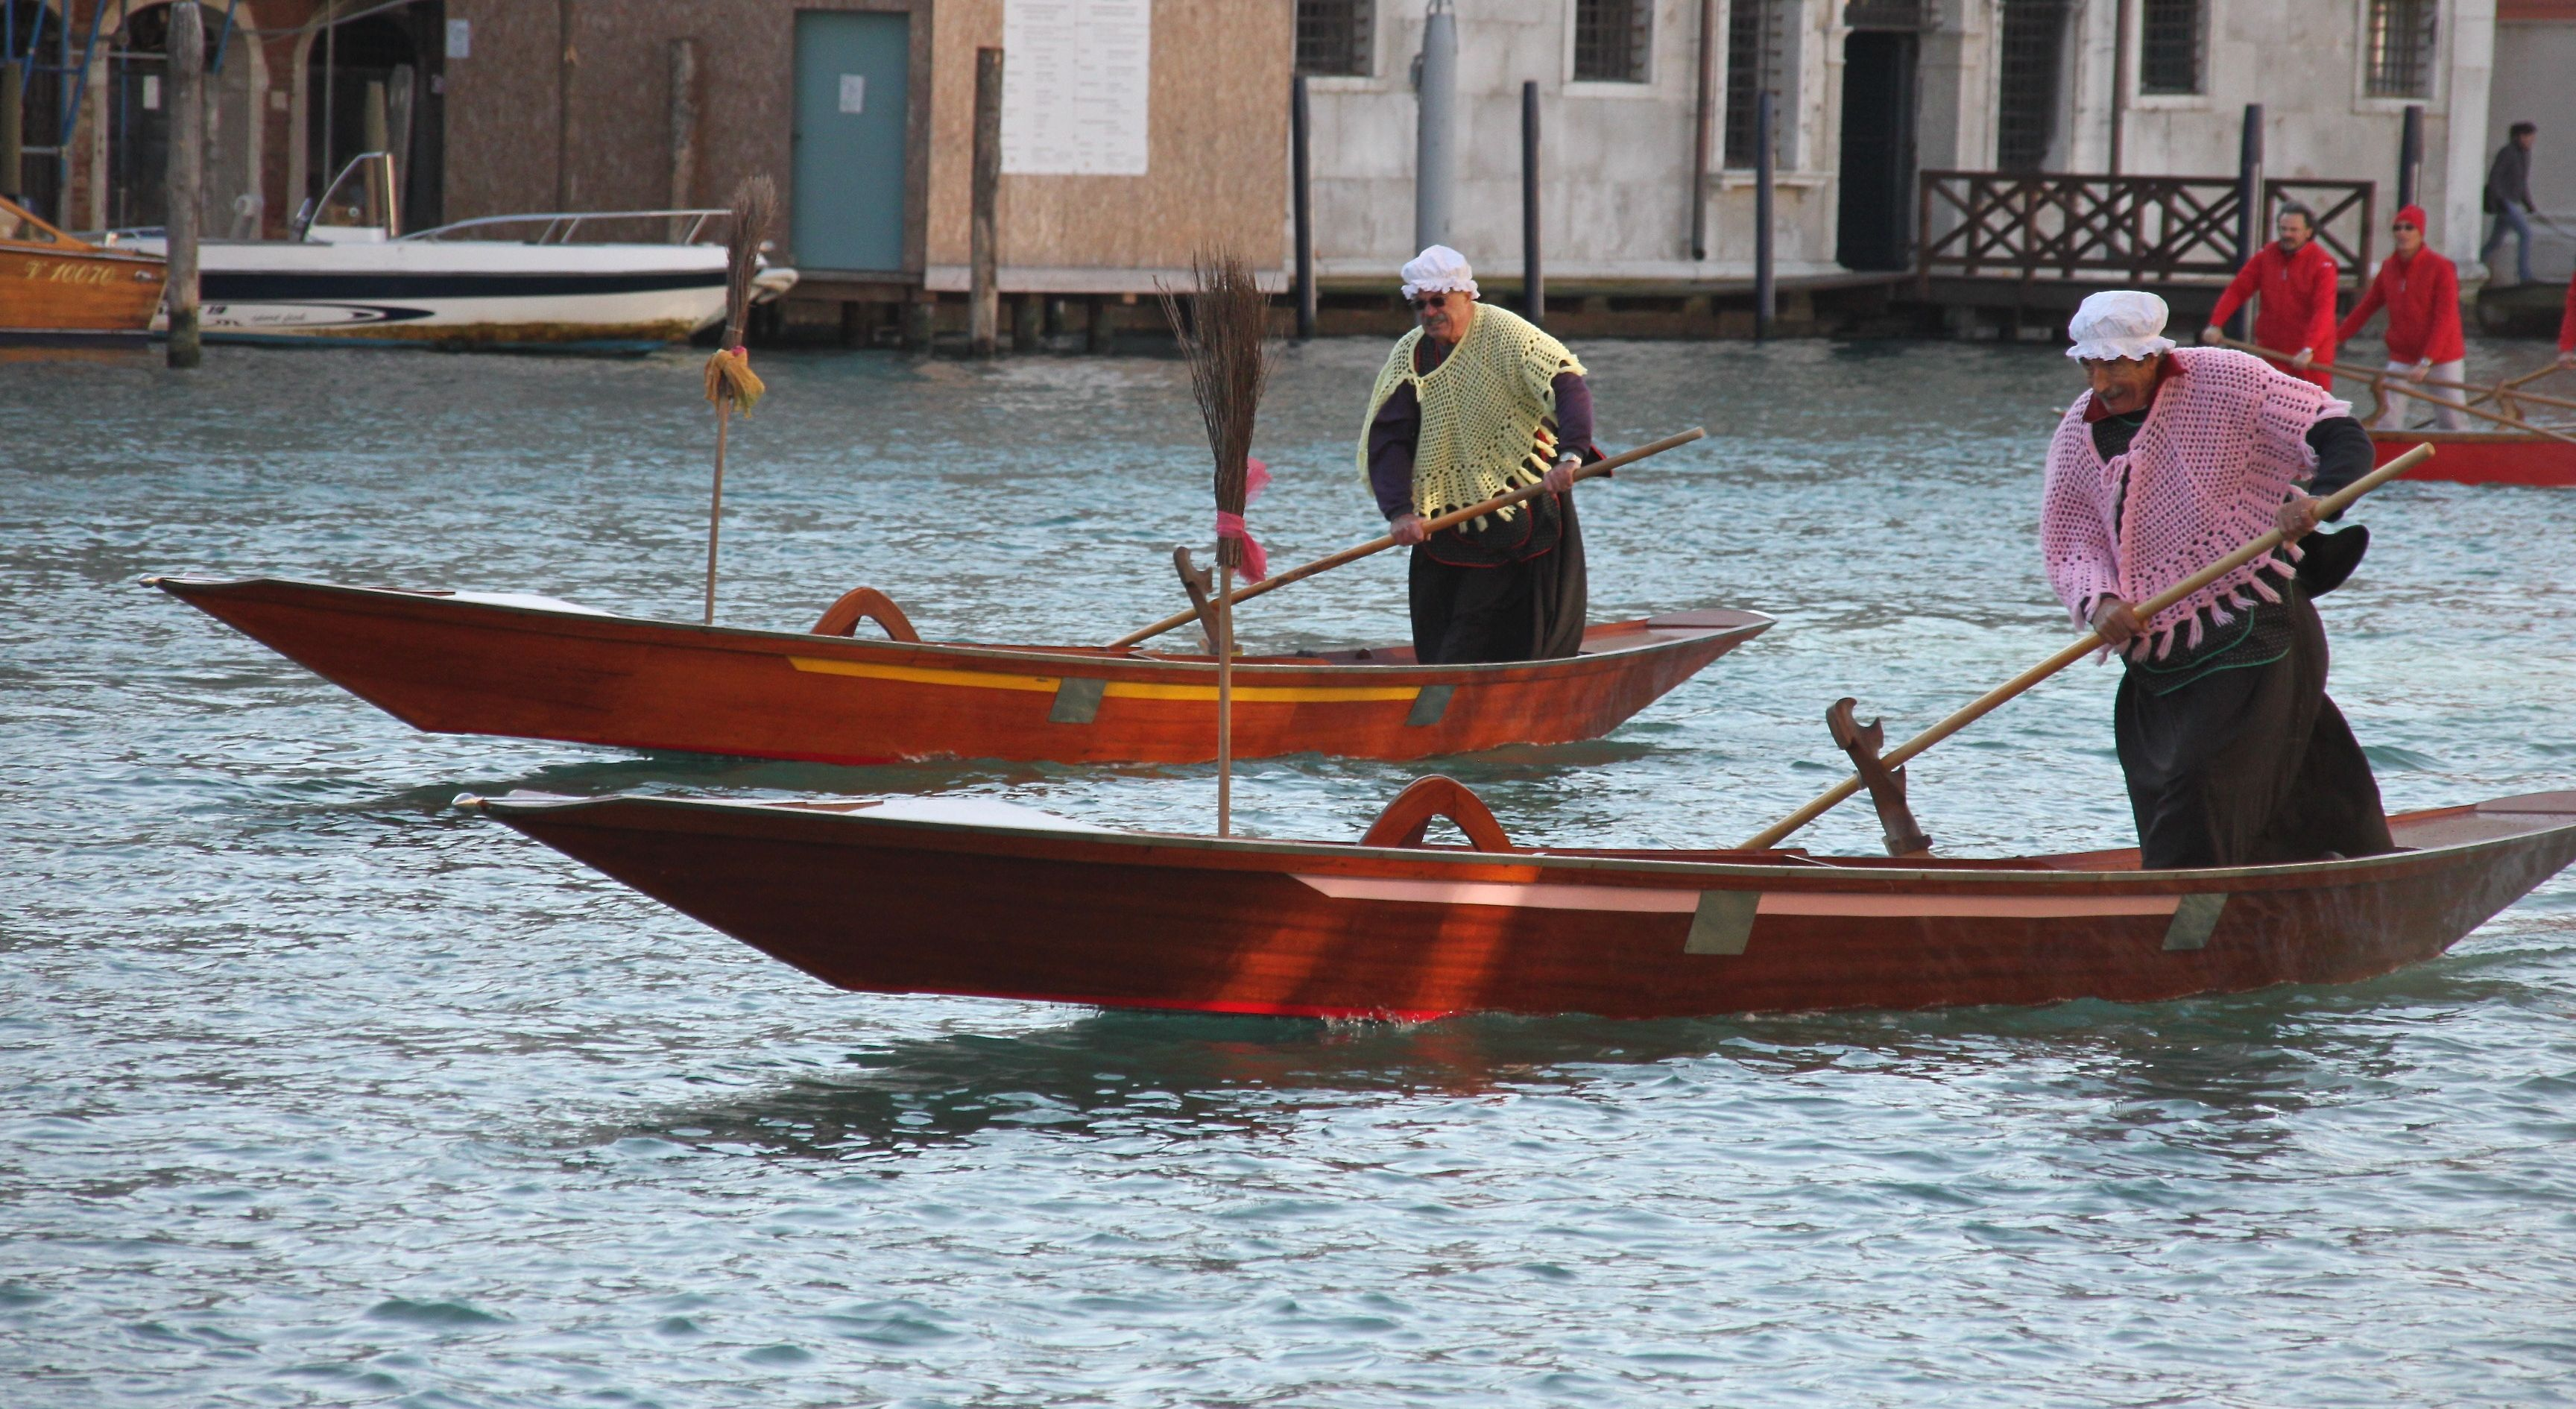 Gondoliers dress as La Befana and race down the Grand Canal in Venice on January 6th to celebrate Epiphany